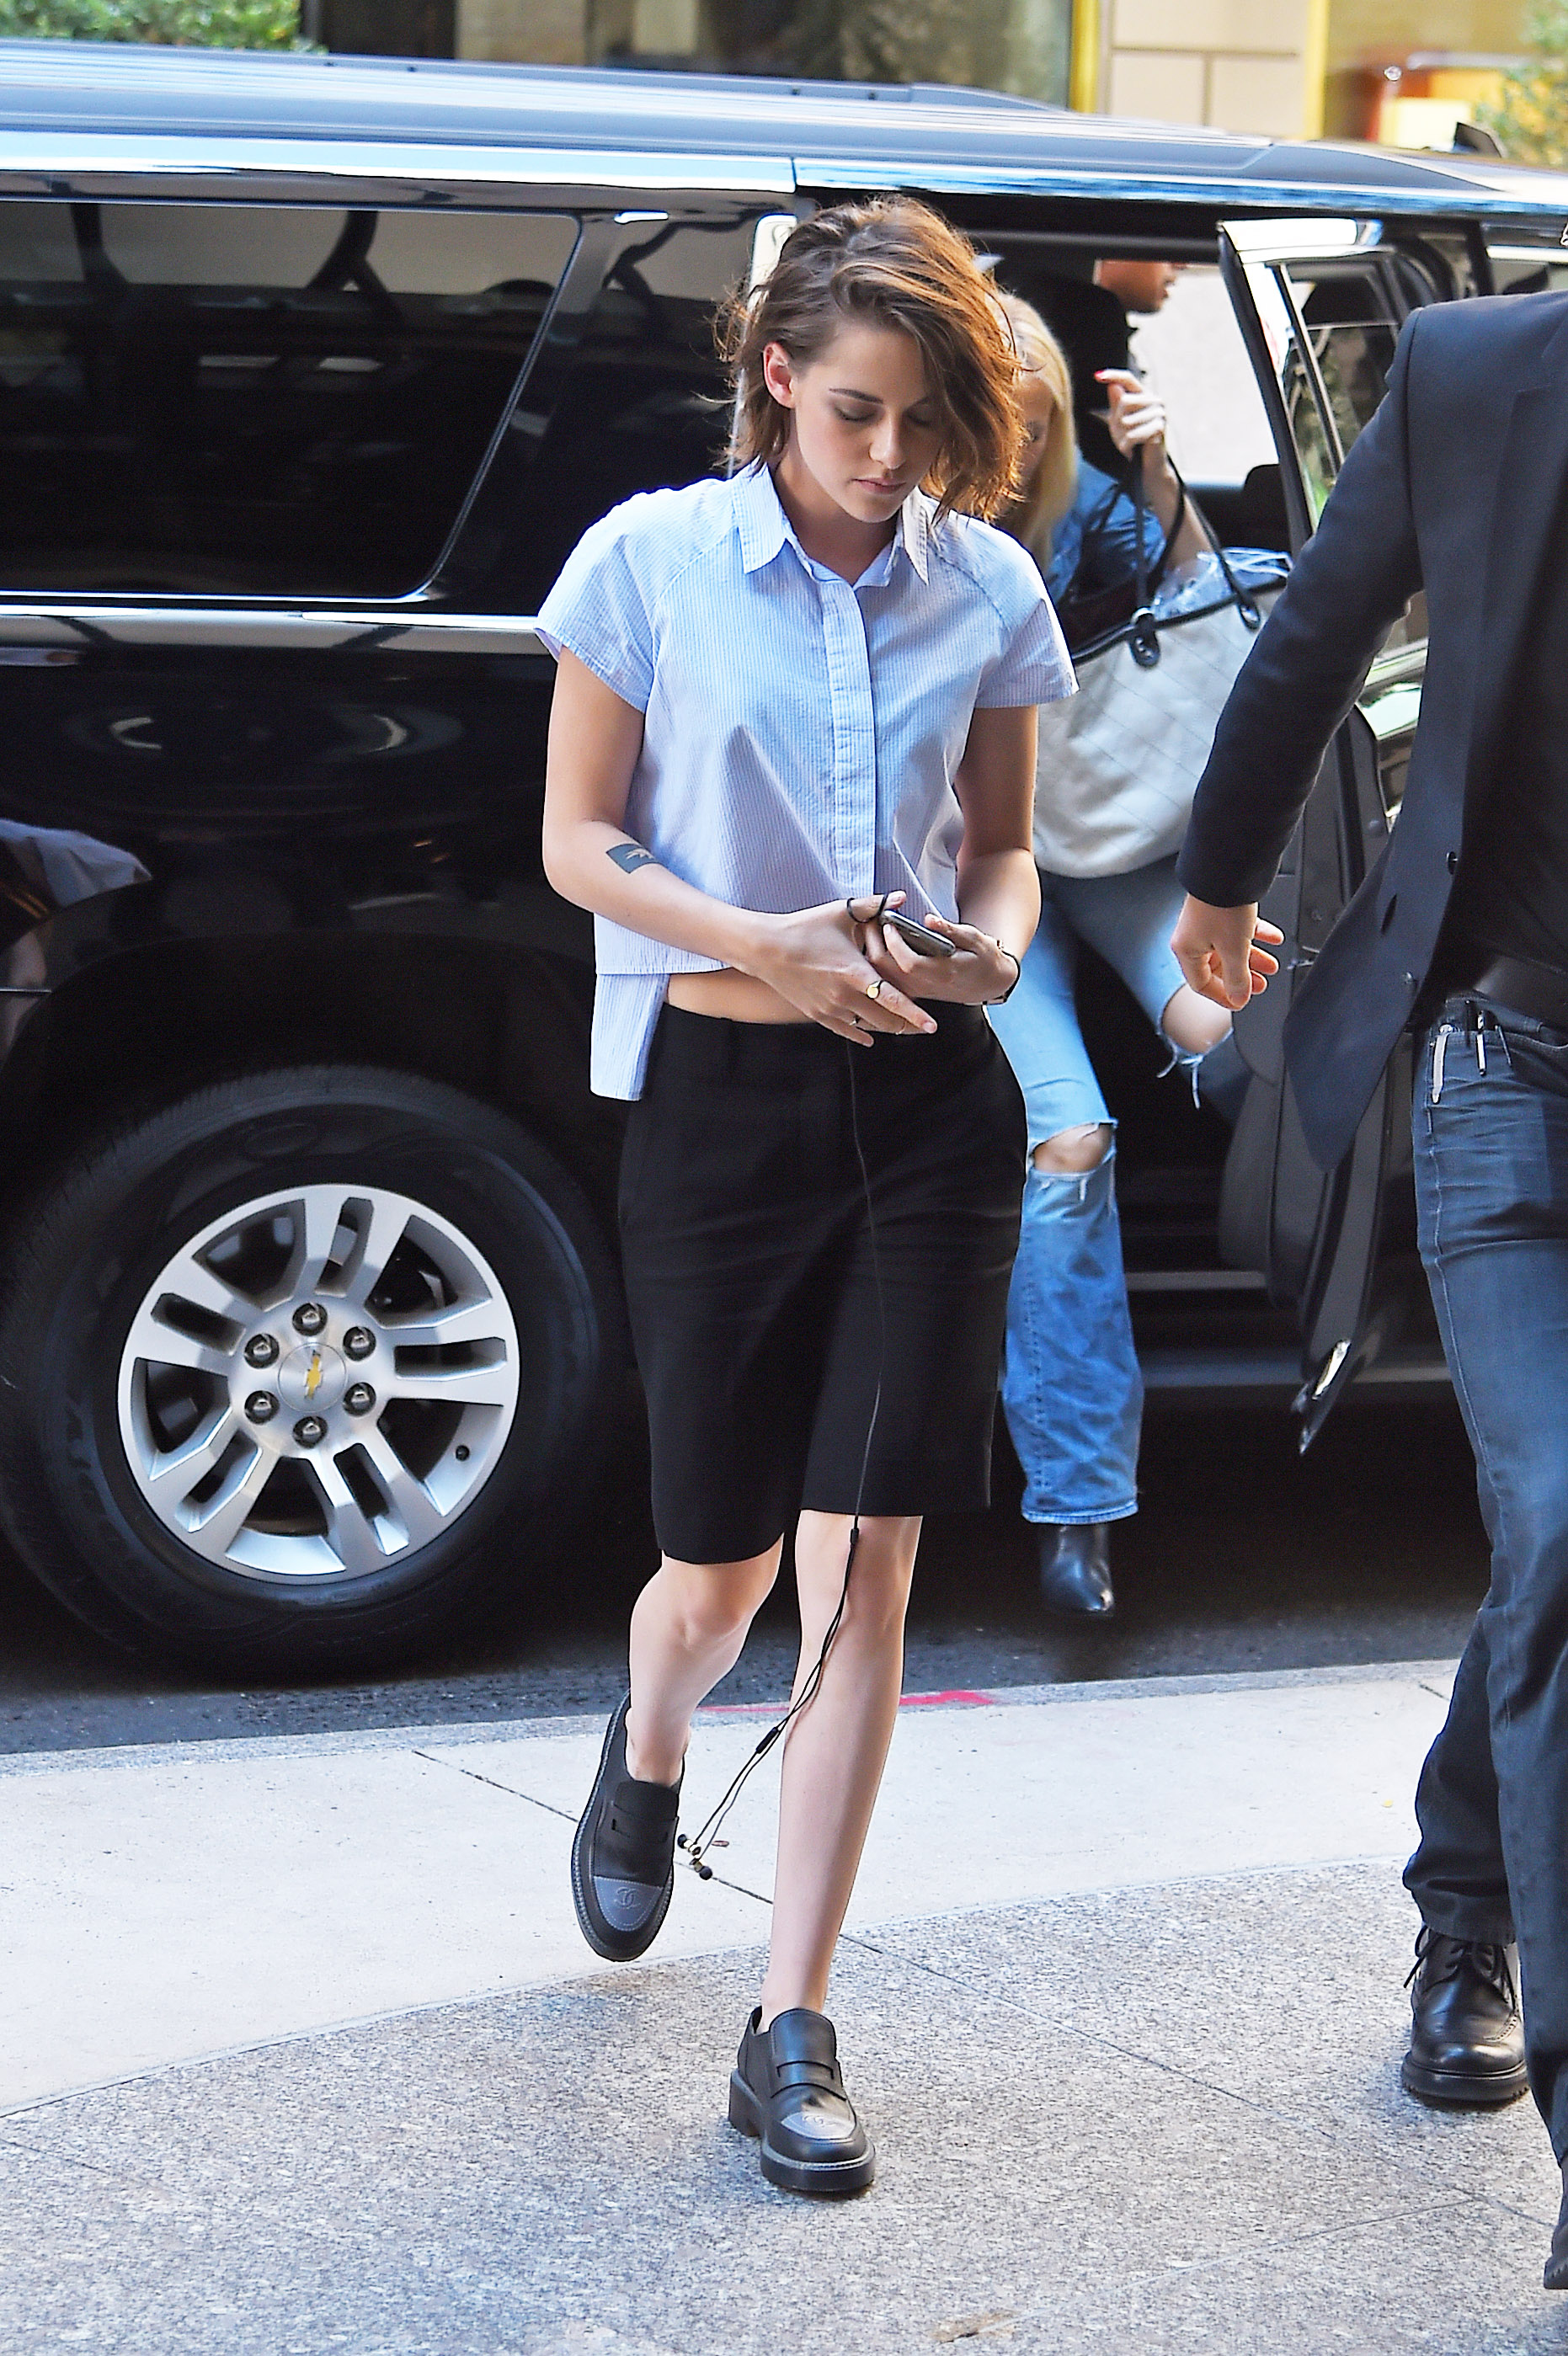 Kristen Stewart Style Fashion Pictures Of Kristen Stewart